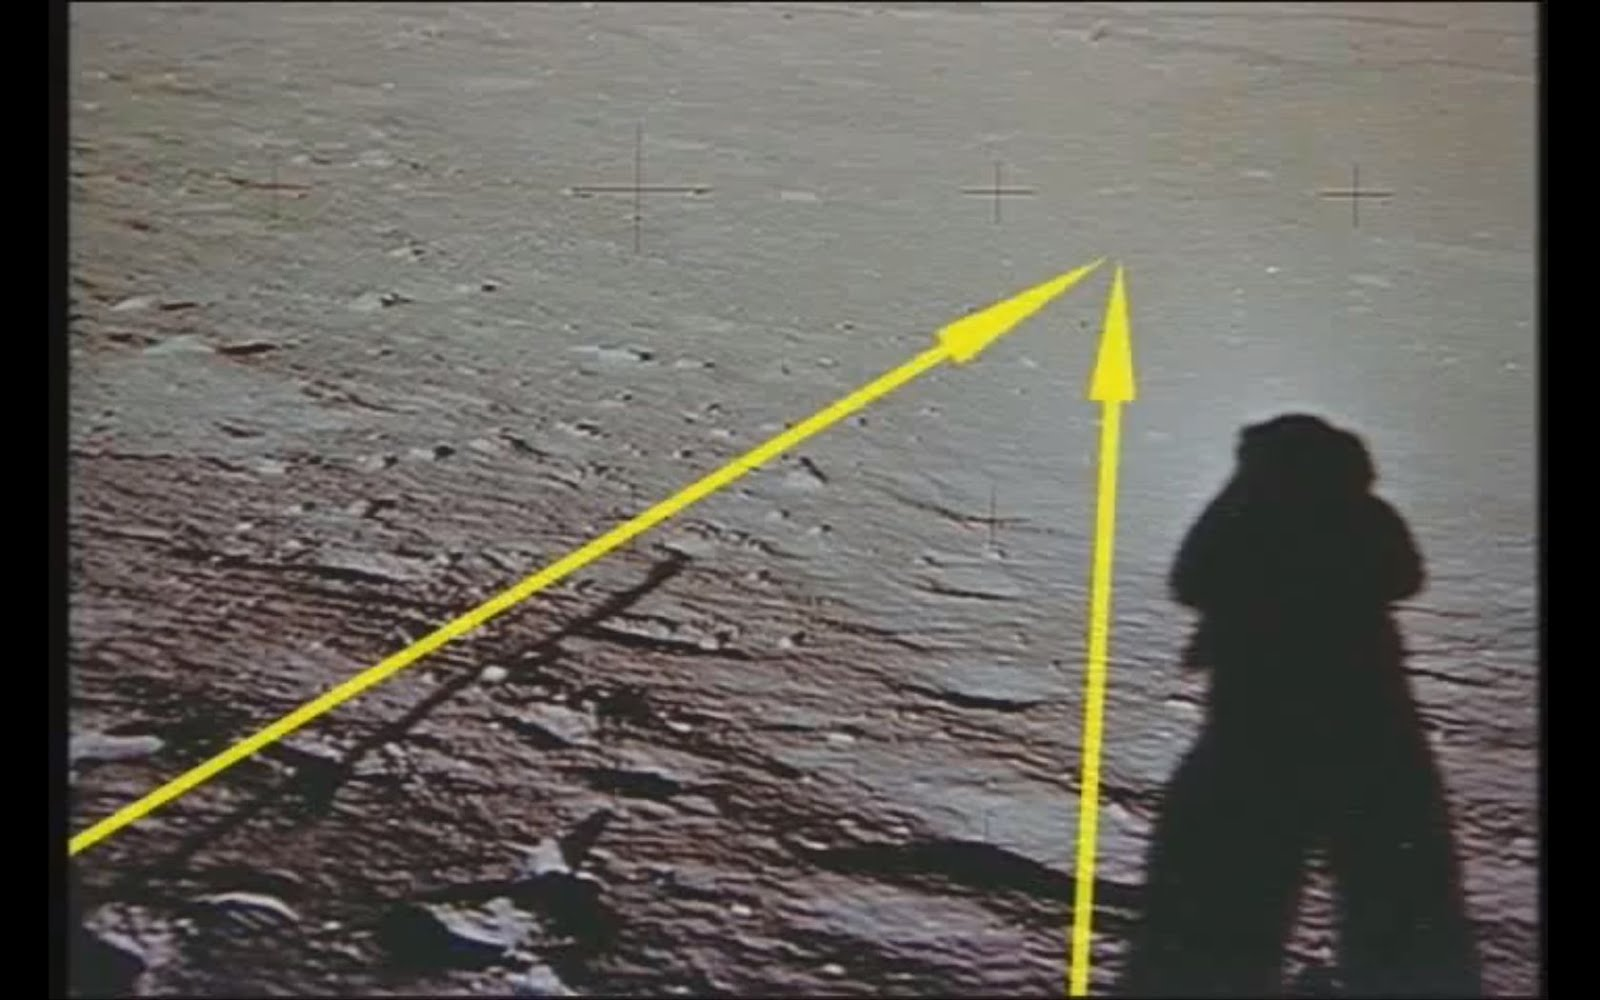 moon landing conspiracy shadows - photo #12